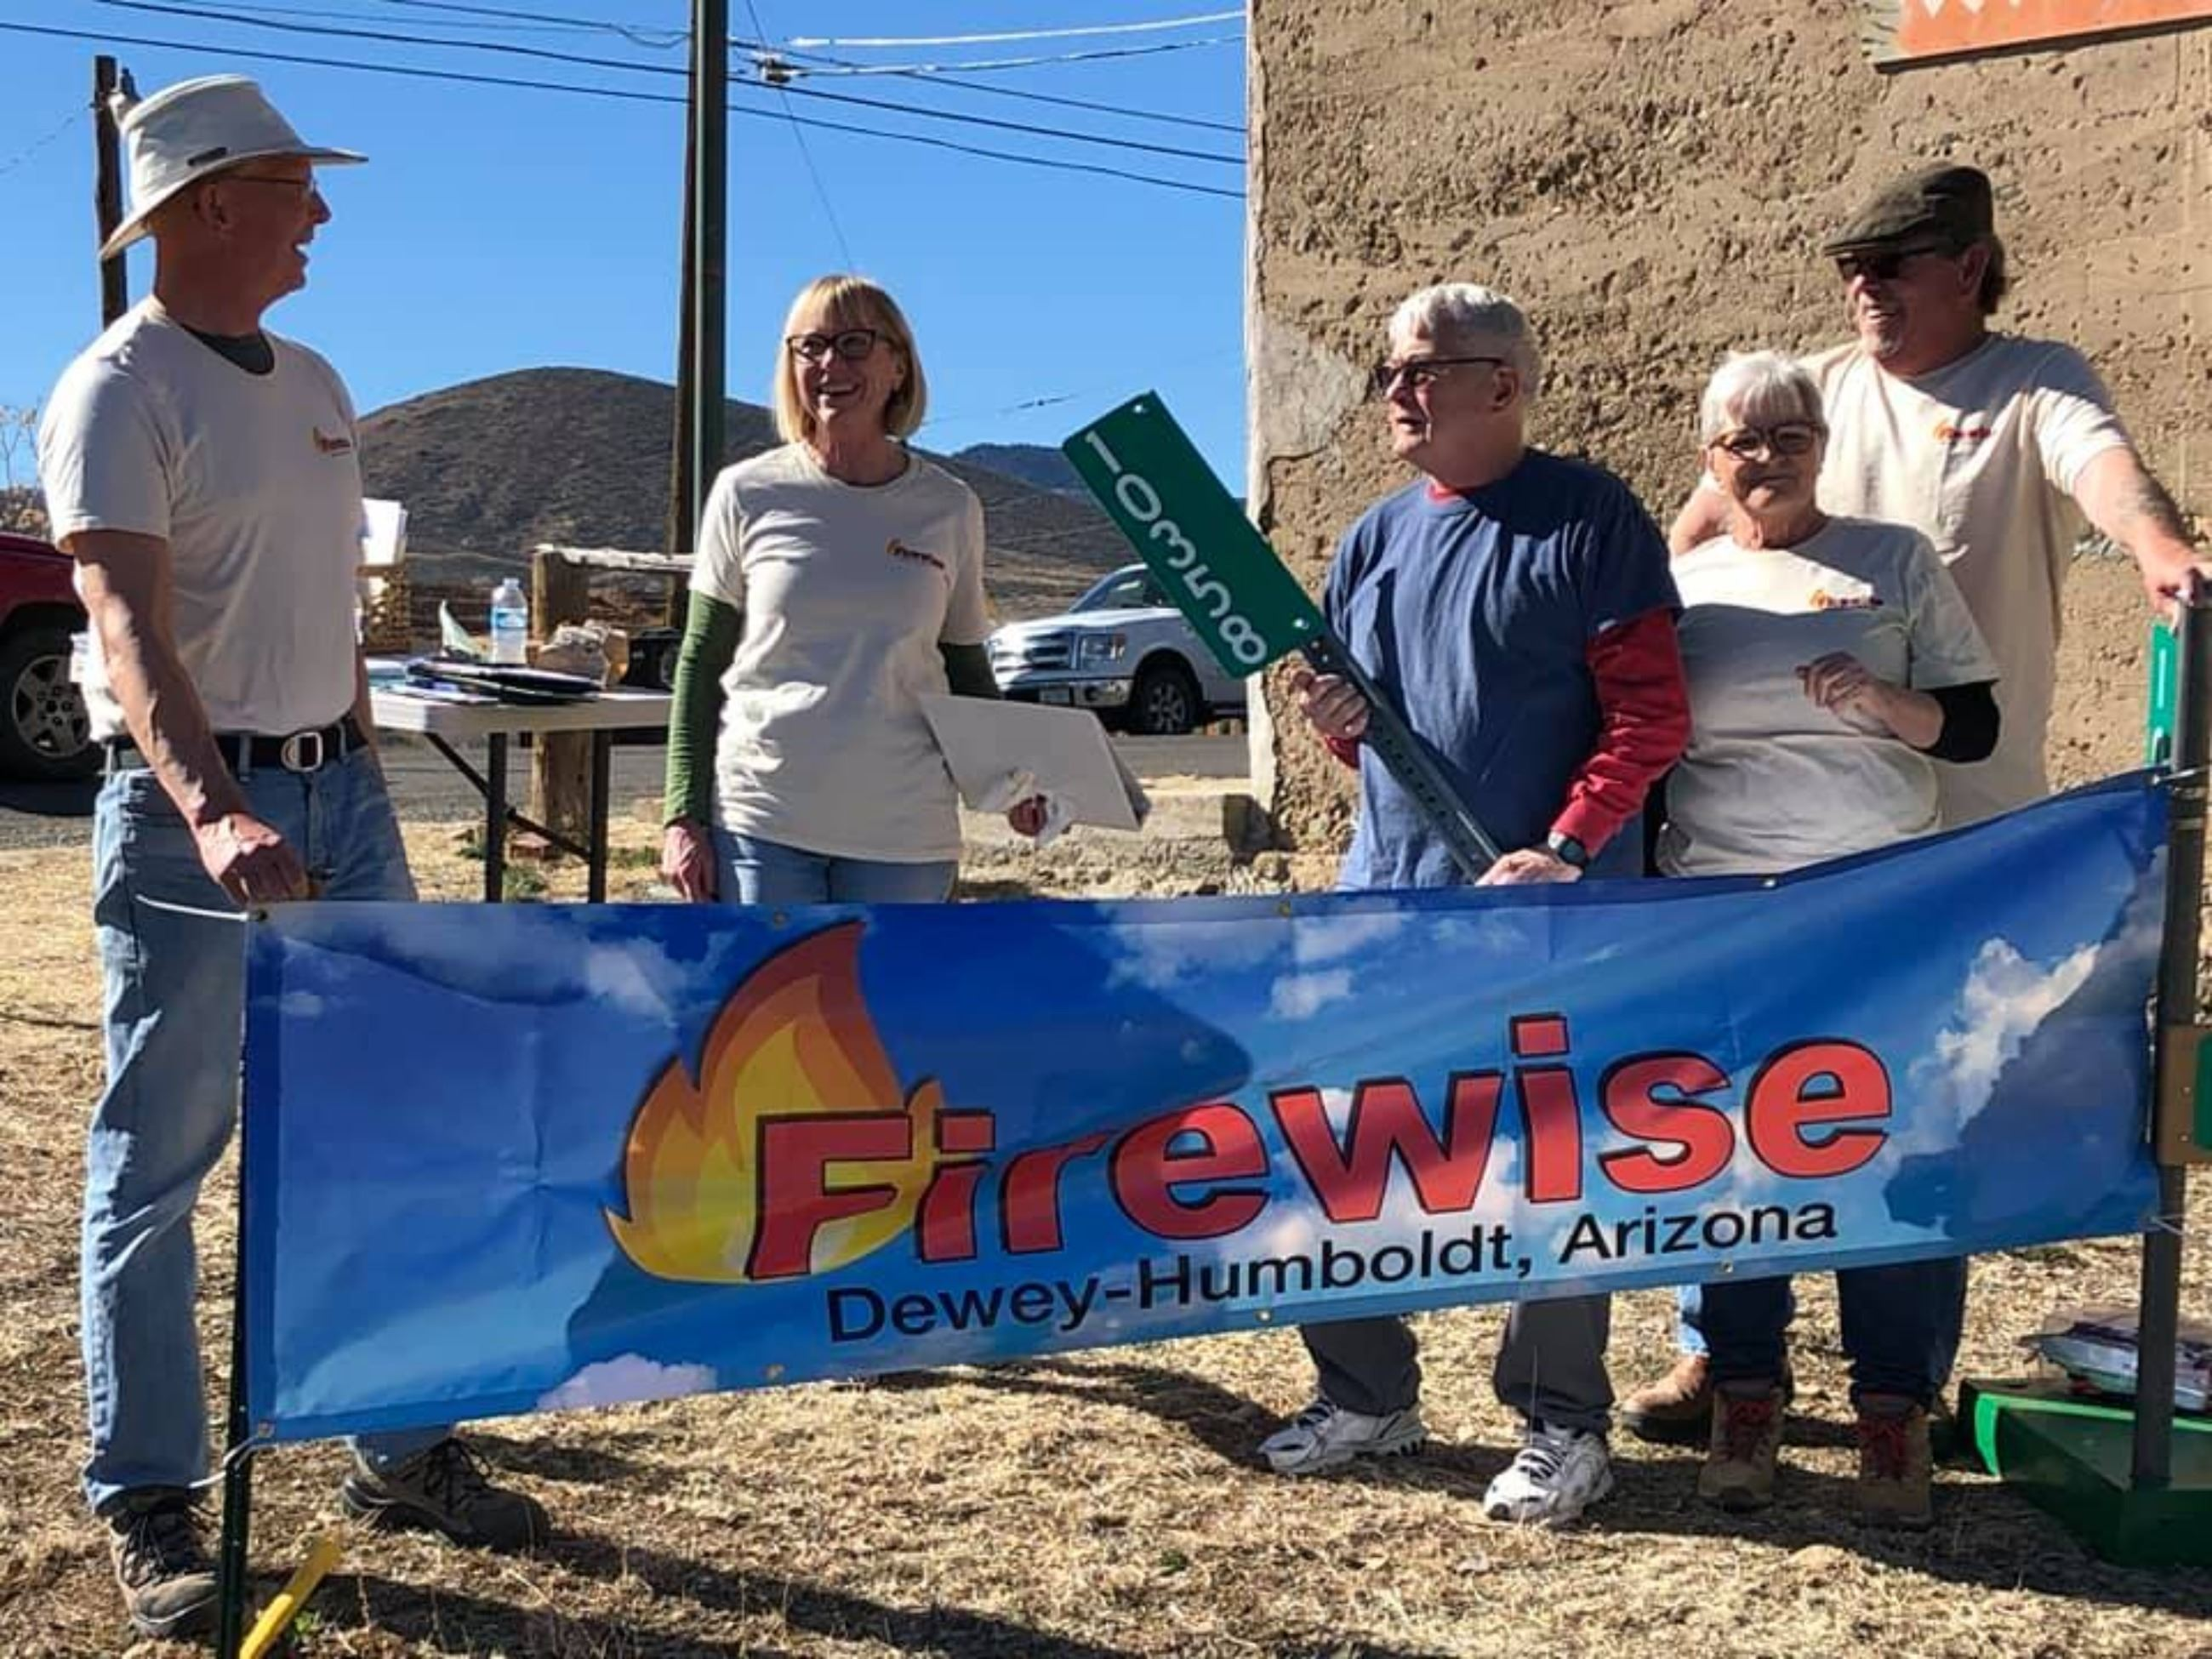 Firewise group February 1, 2020